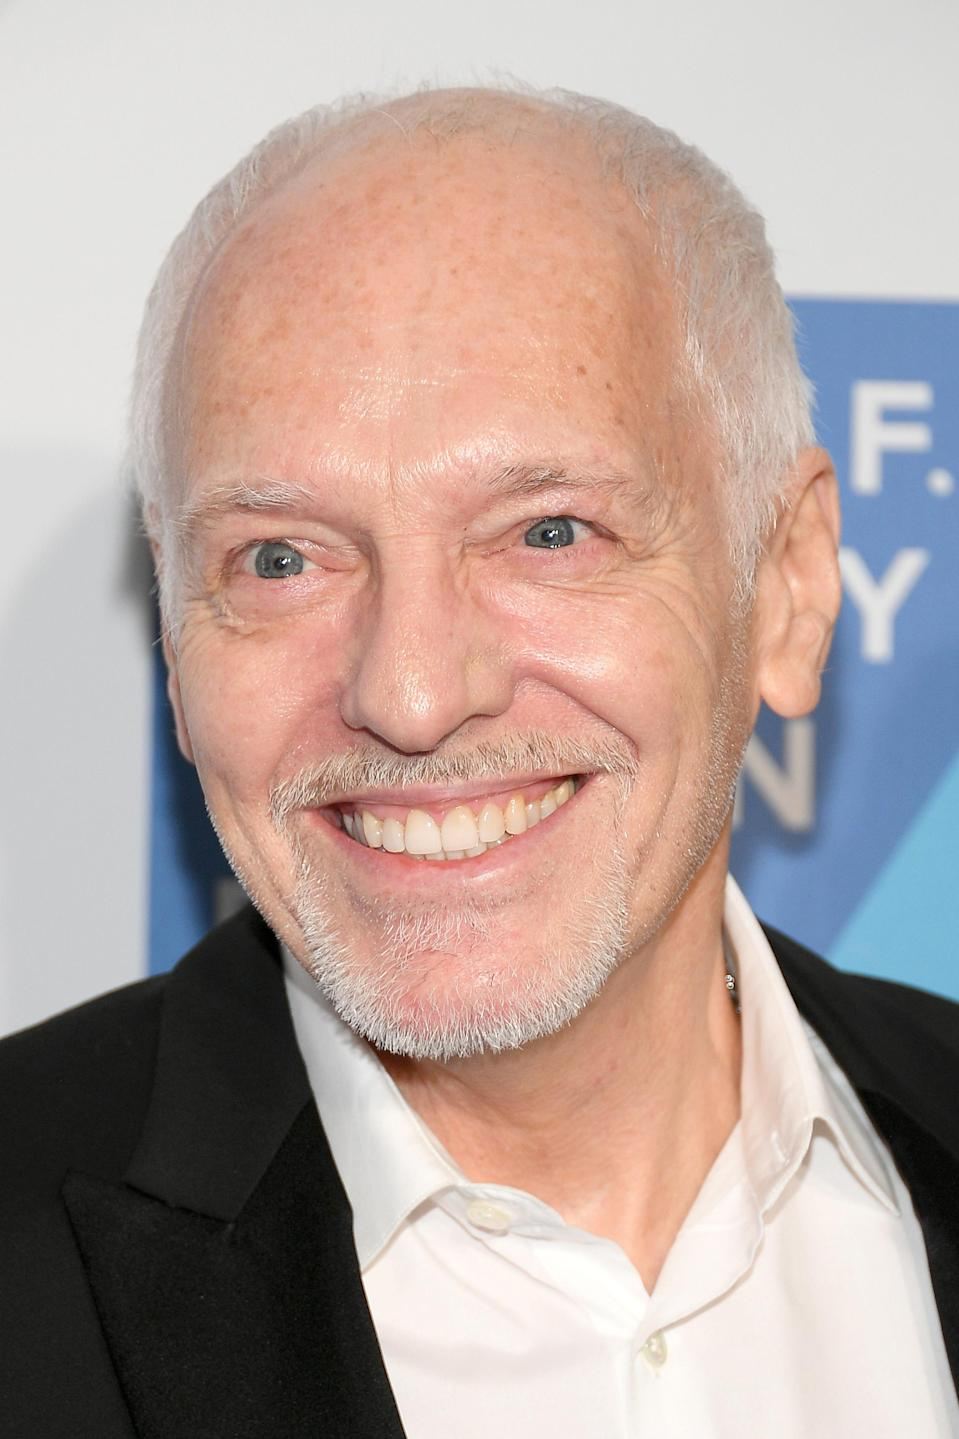 Peter Frampton arrives at the 2019 RFK Ripple of Hope Awards at New York Hilton Midtown on December 12, 2019 in New York City. (Photo by Dia Dipasupil/Getty Images)